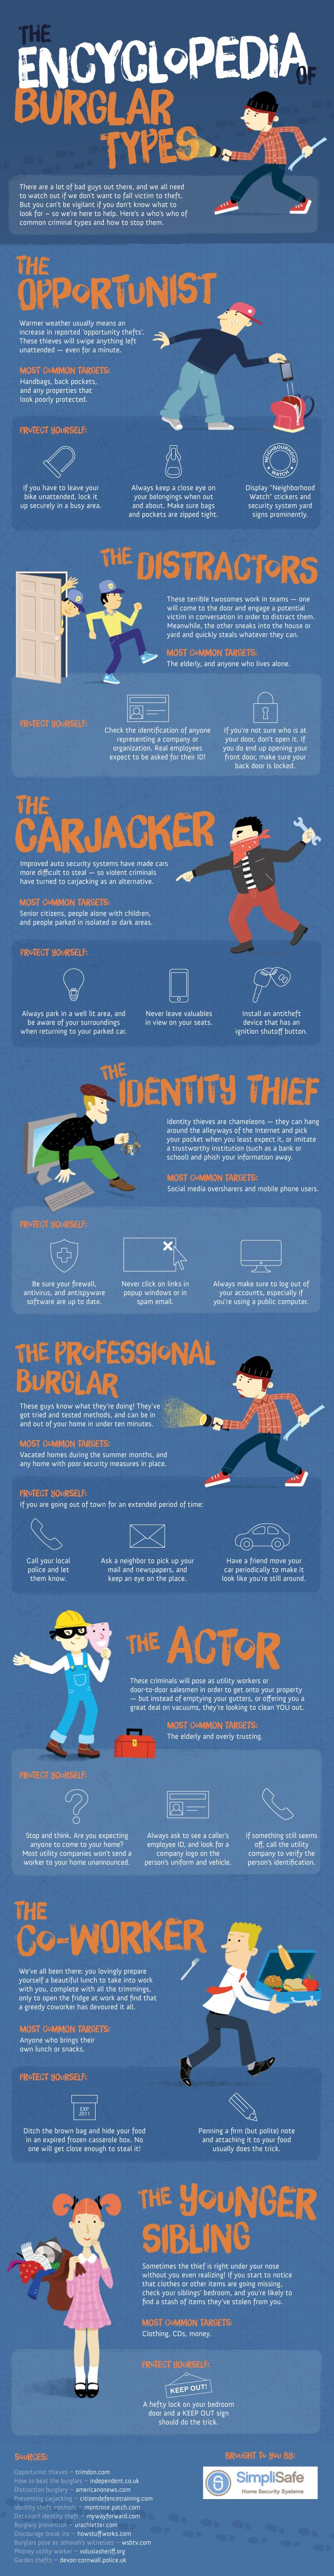 The Encyclopedia of Burglar Types. You can't prepared if you don't know what's out there! http://preparednessmama.com/encyclopedia-burglar-types/